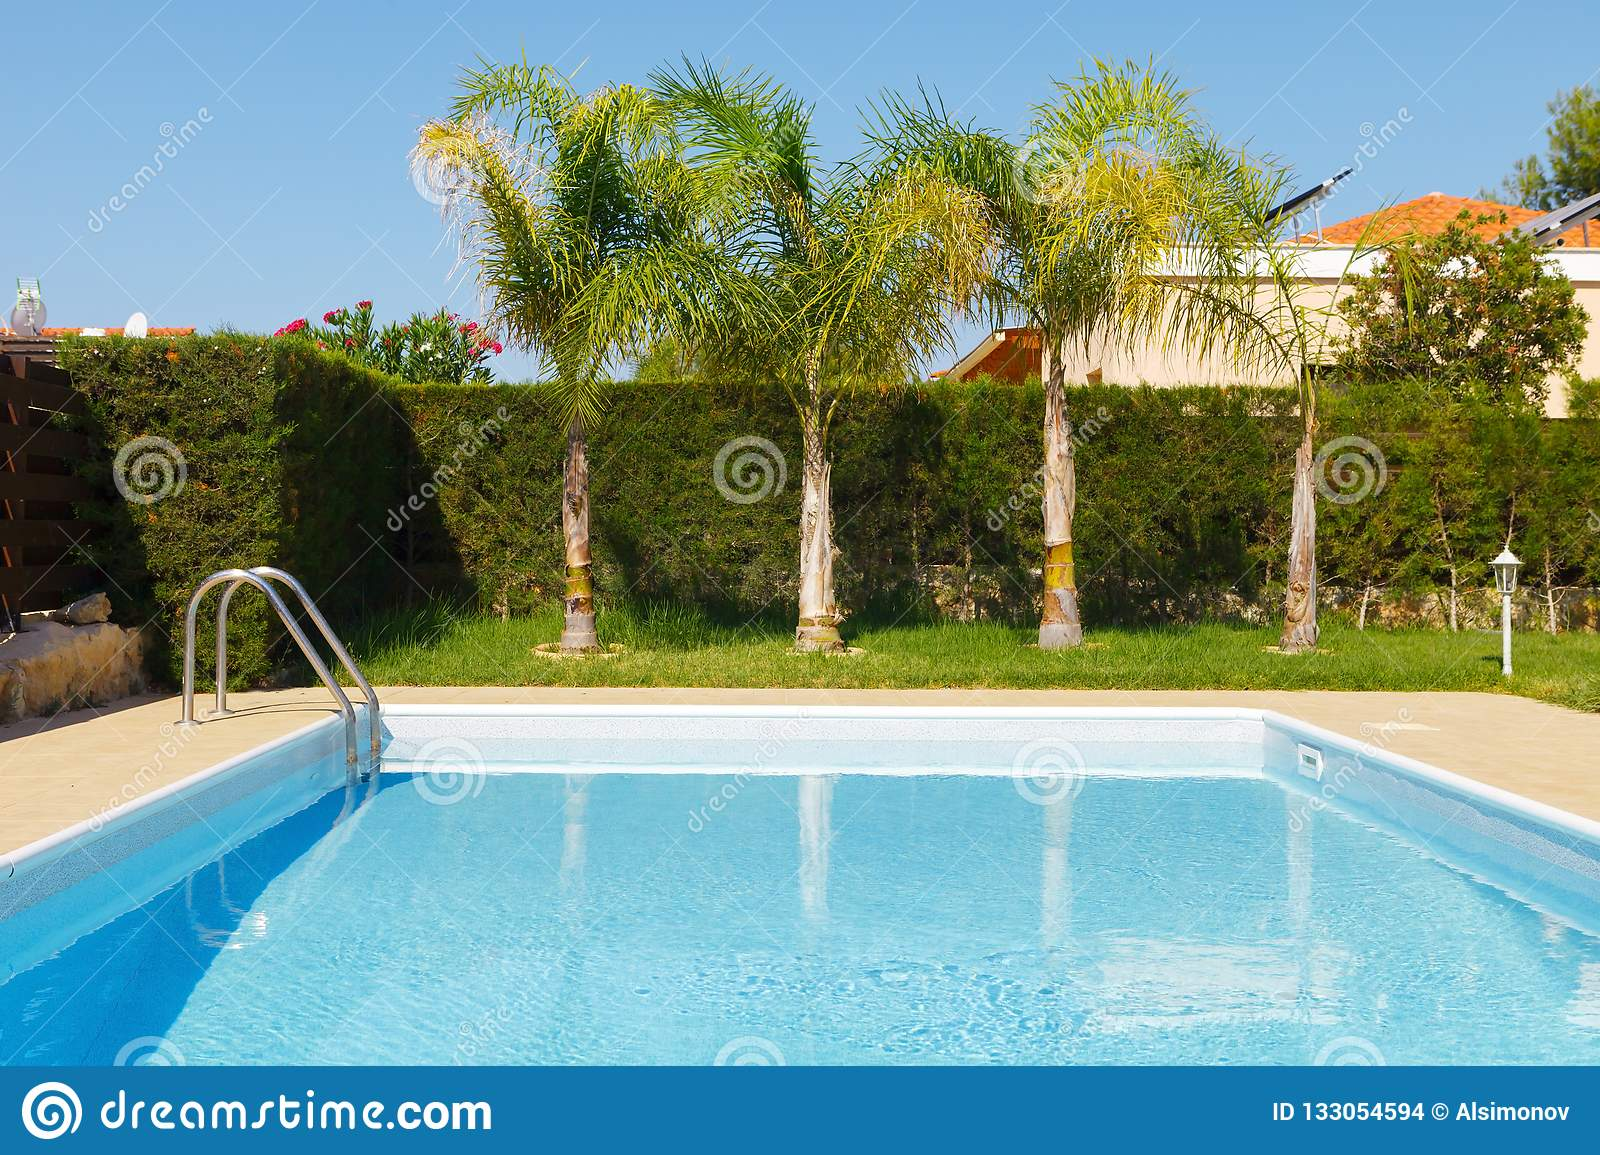 Small Swimming Pool With Clean Blue Water In The Yard Of A